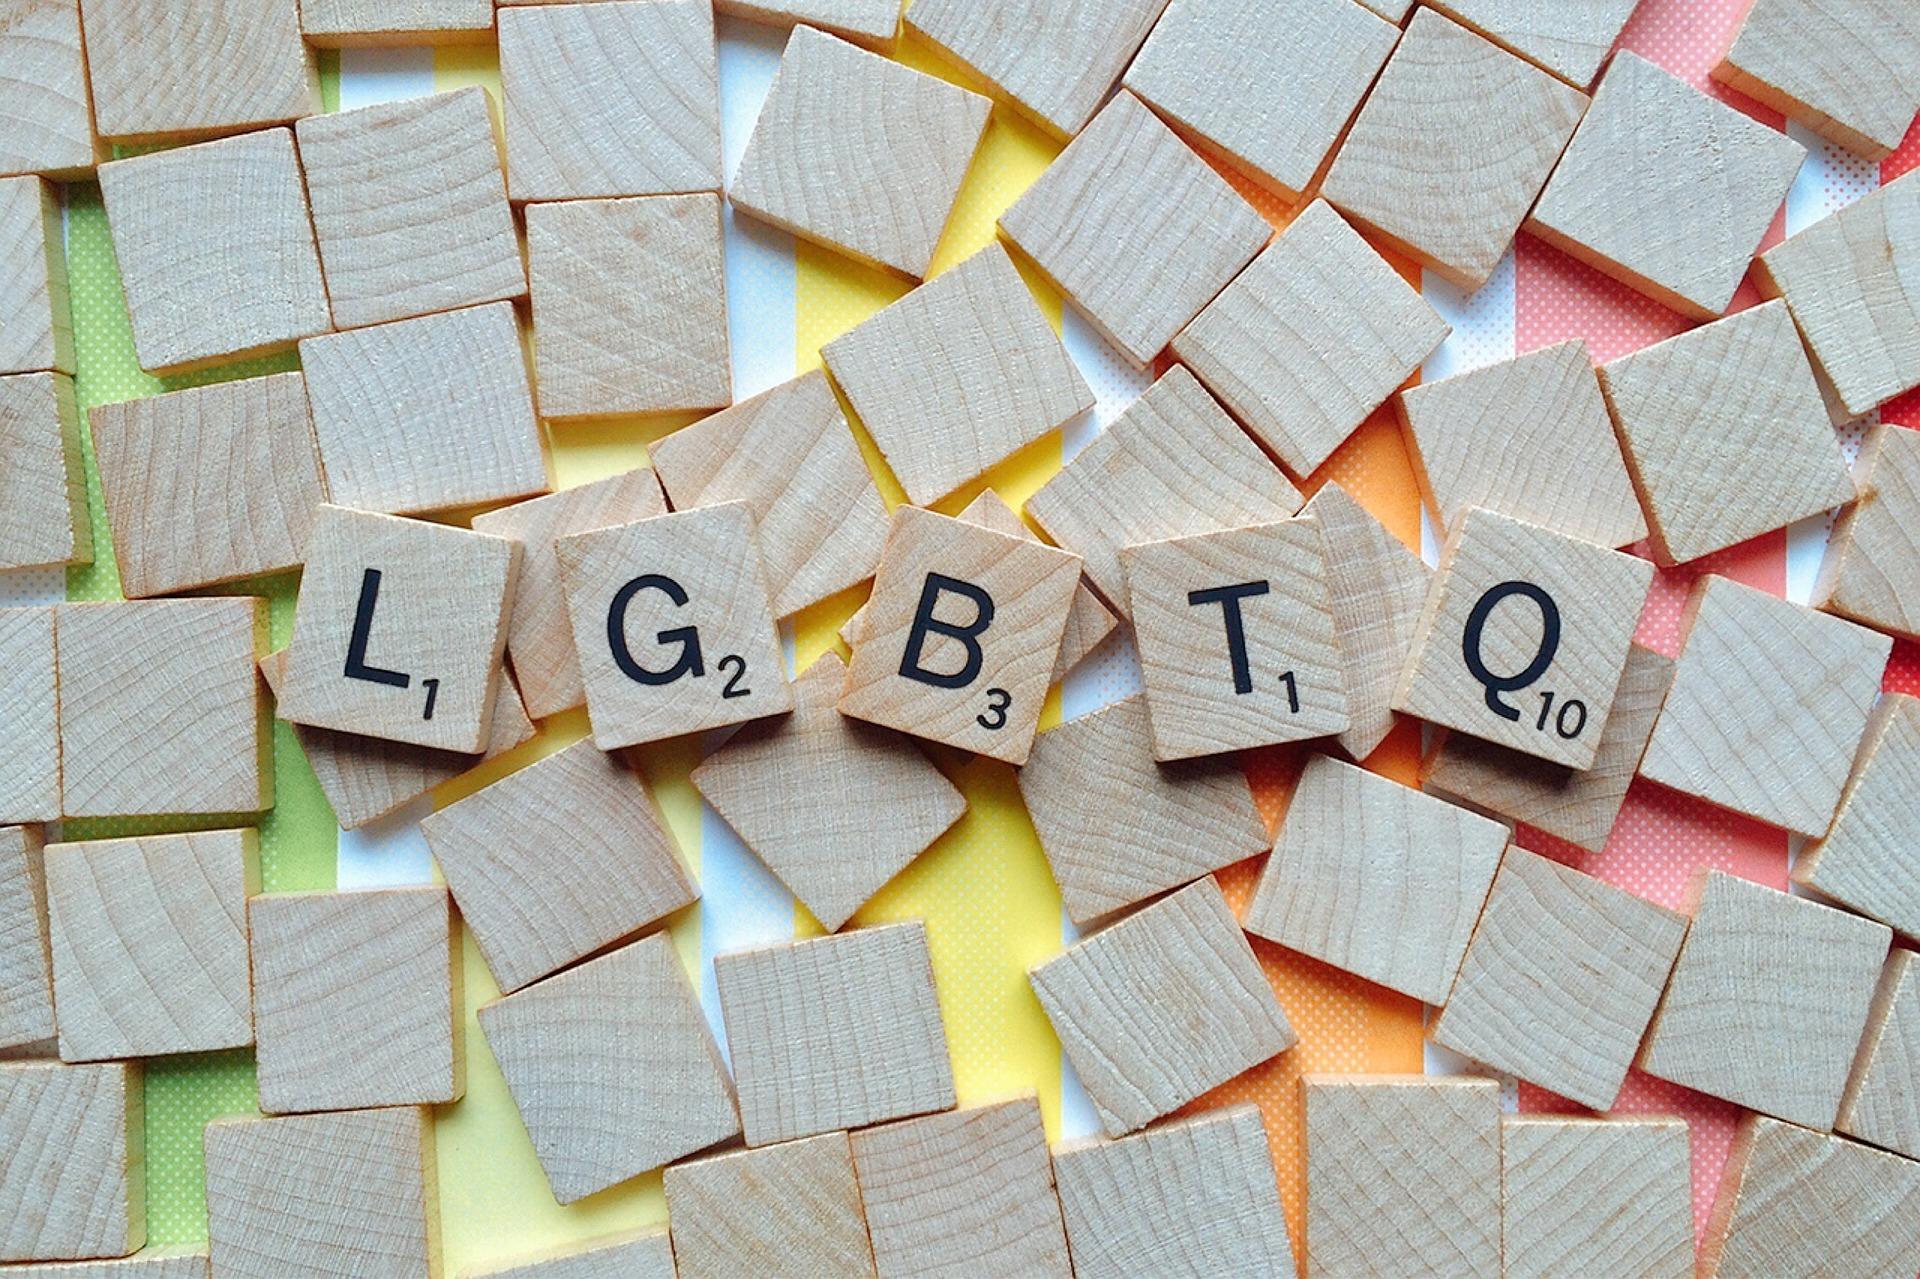 Scrabble letters spelling out LGBTQ